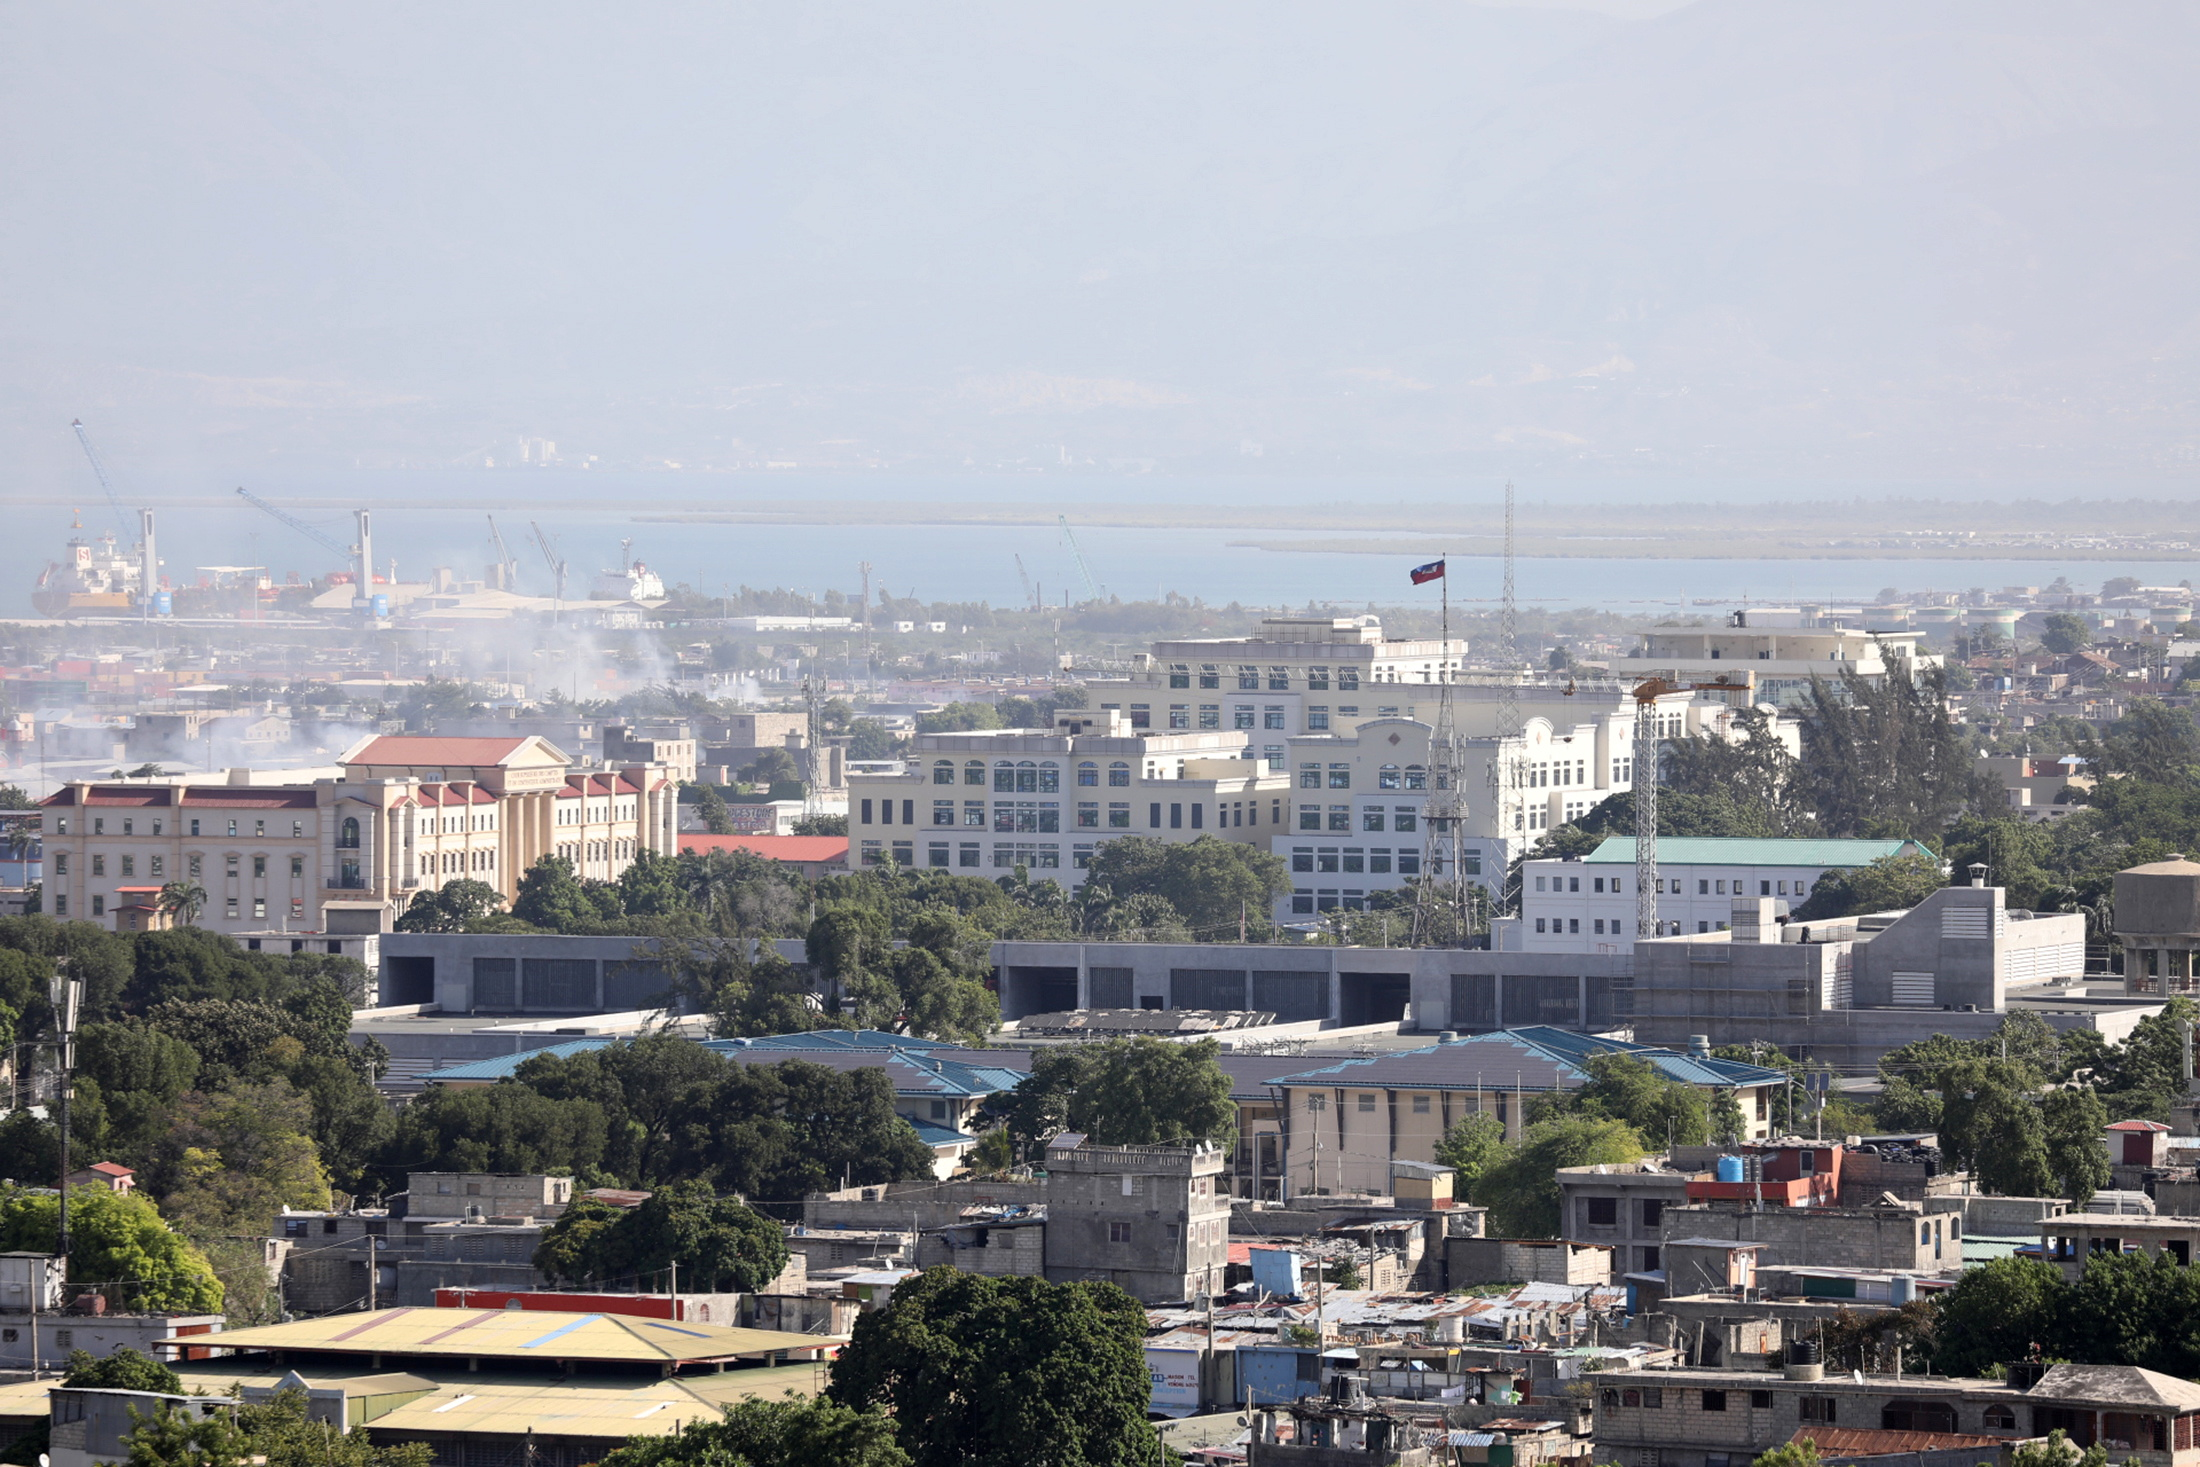 A view of the port and the area around Champs de Mar, near the presidential palace, after Haiti's President Jovenel Moise was shot dead by unidentified attackers in his private residence, in Port-au-Prince, Haiti July 7, 2021. REUTERS/Valerie Baeriswyl